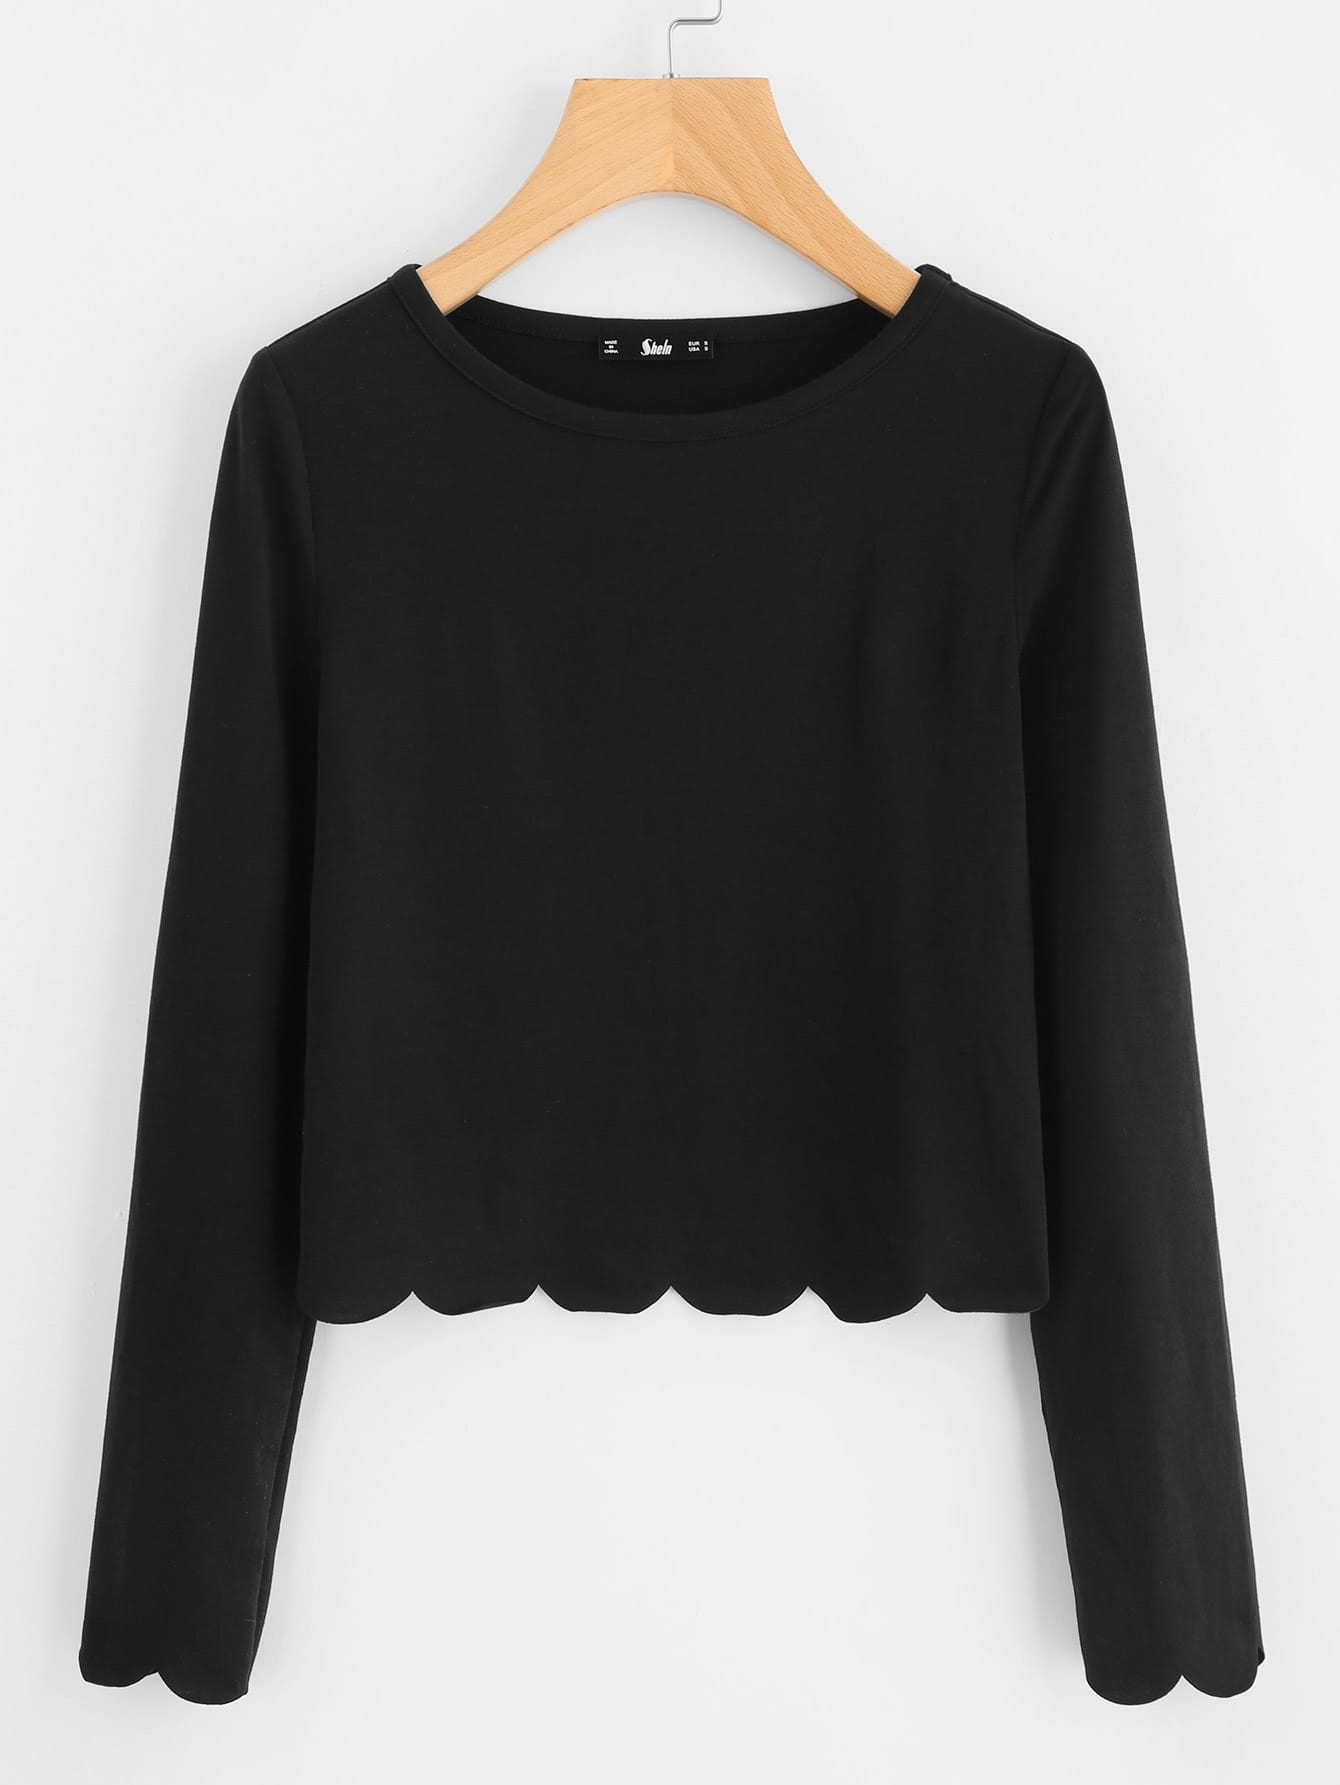 Scallop Hem Crop Top